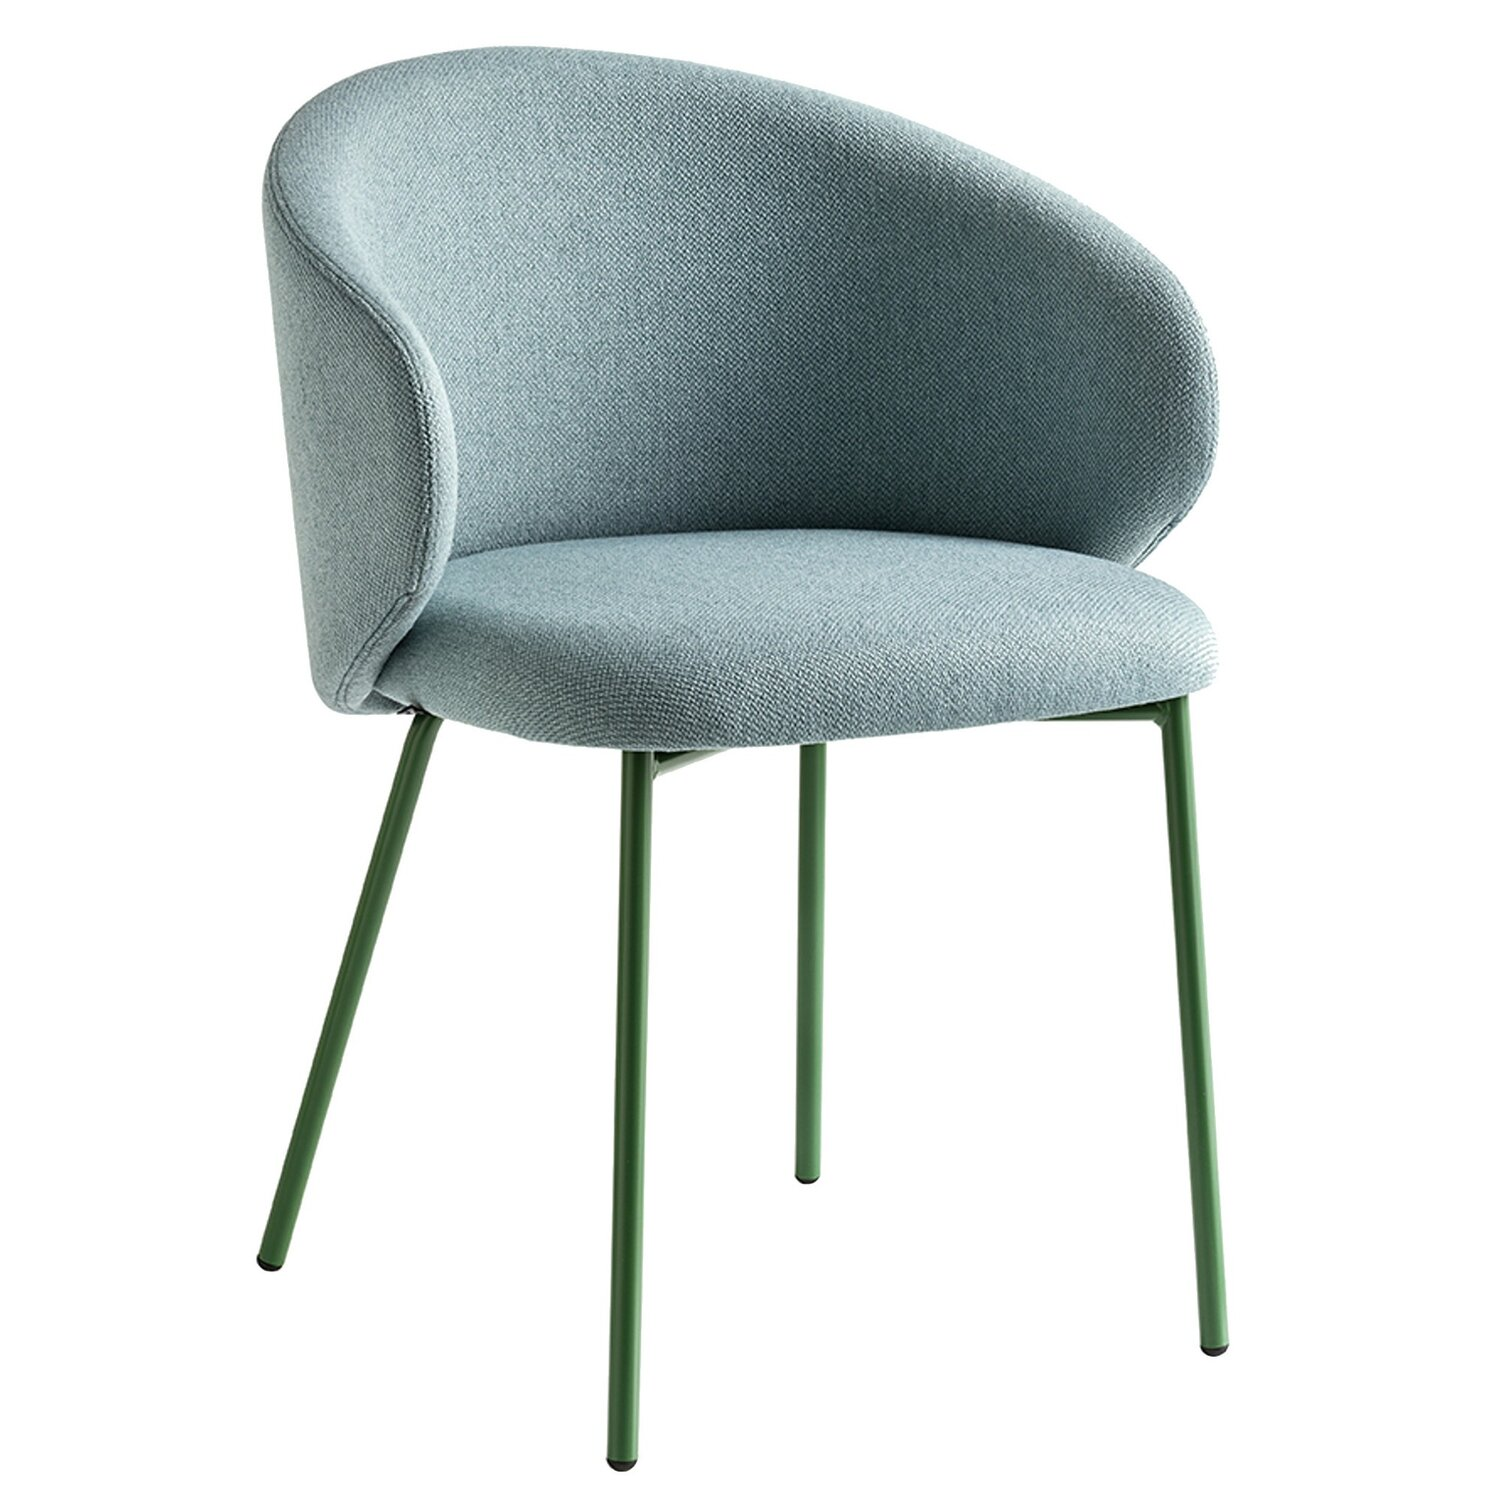 TUKA DINING CHAIR WITH ARM  Homey.Home  Interiors